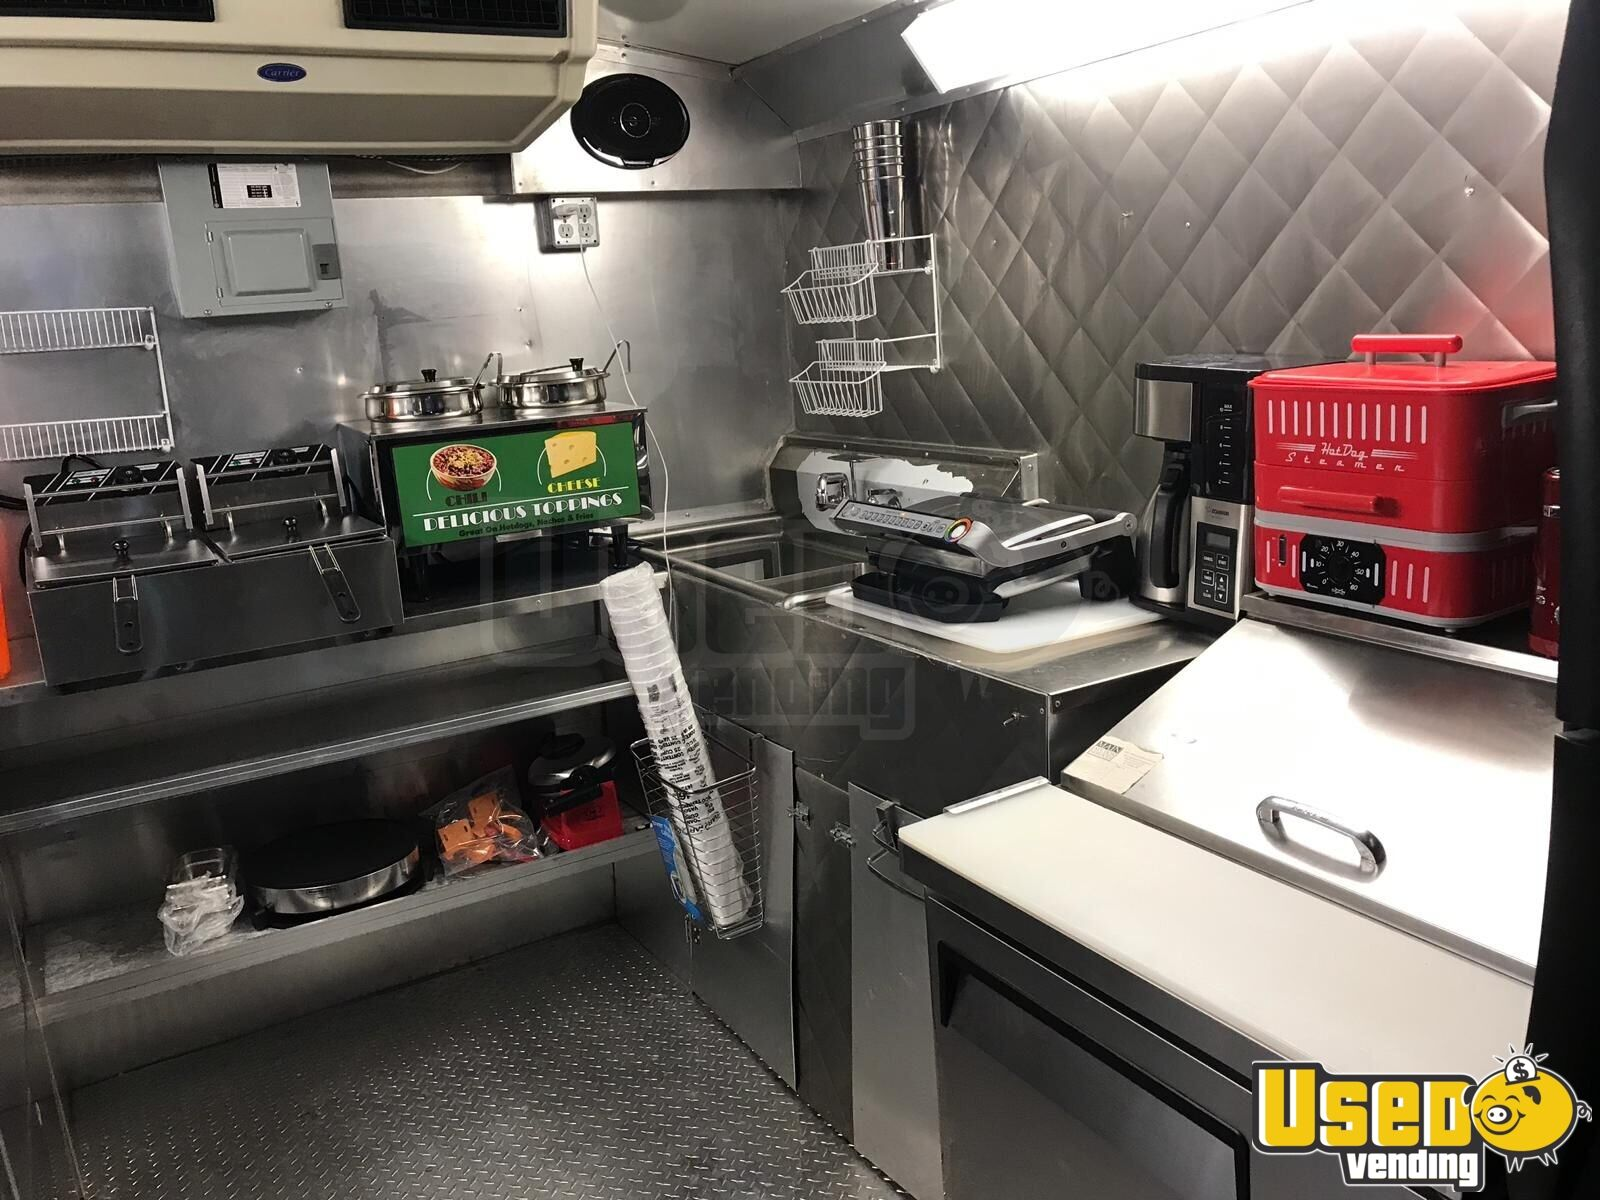 2006 Ford E-350 All-purpose Food Truck Vertical Broiler Texas for Sale - 16